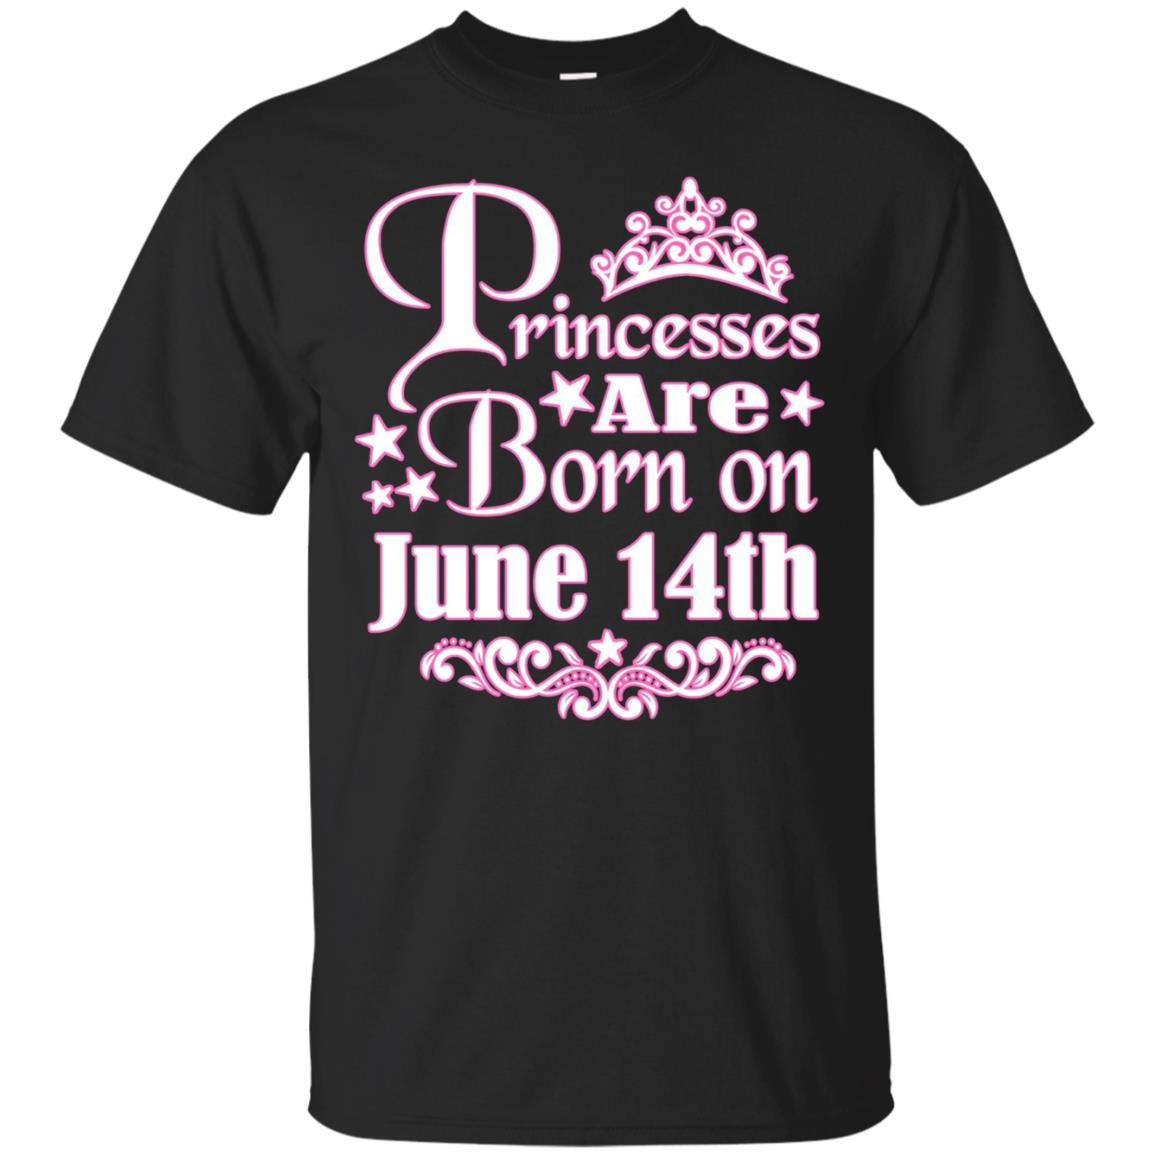 Princesses Are Born On June 14th Funny Birthday